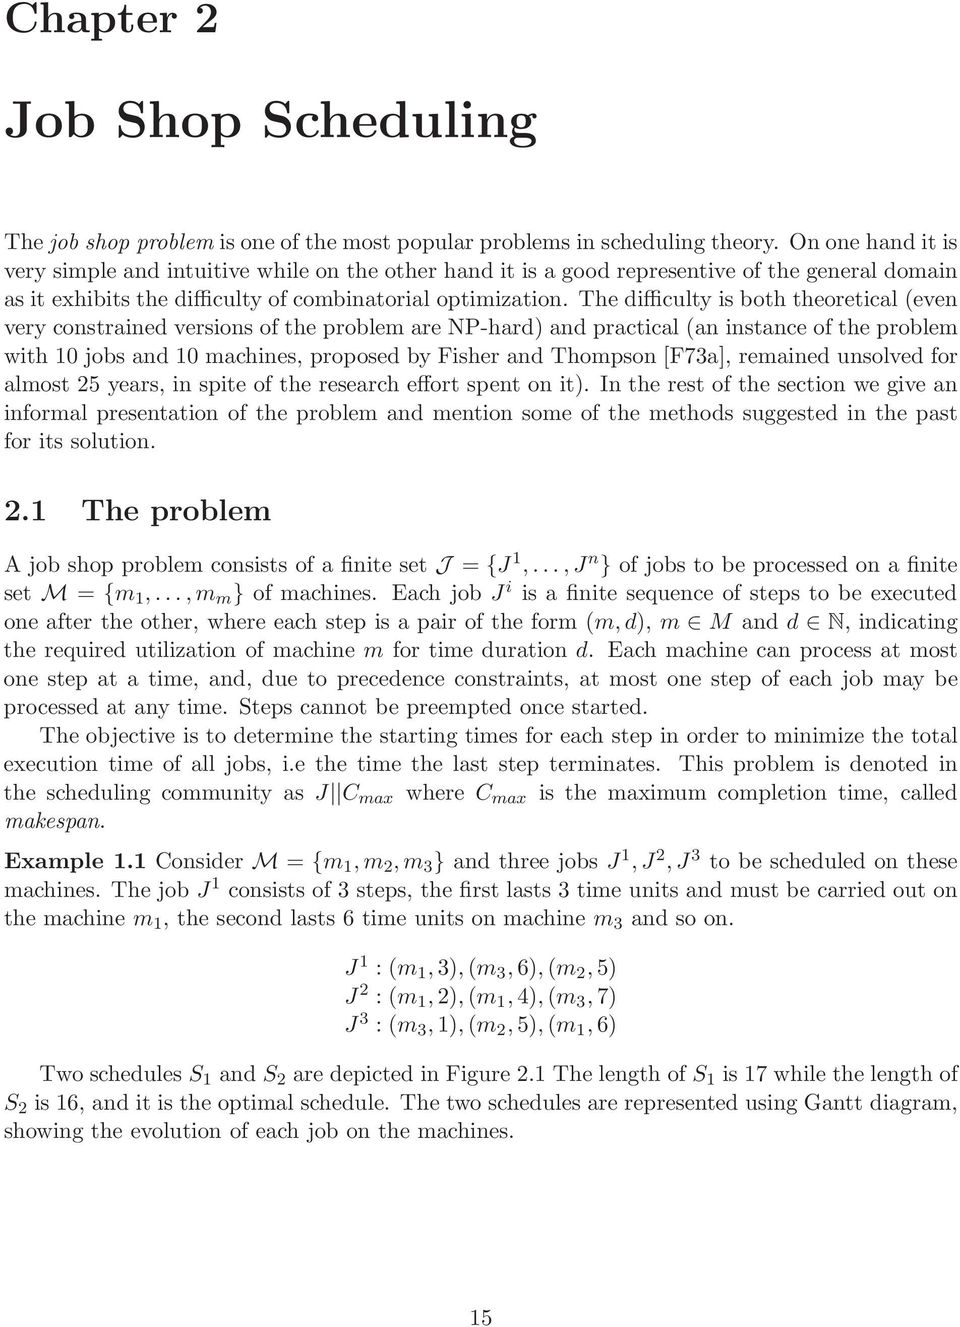 The difficulty is both theoretical (even very constrained versions of the problem are NP-hard) and practical (an instance of the problem with 1 jobs and 1 machines, proposed by Fisher and Thompson